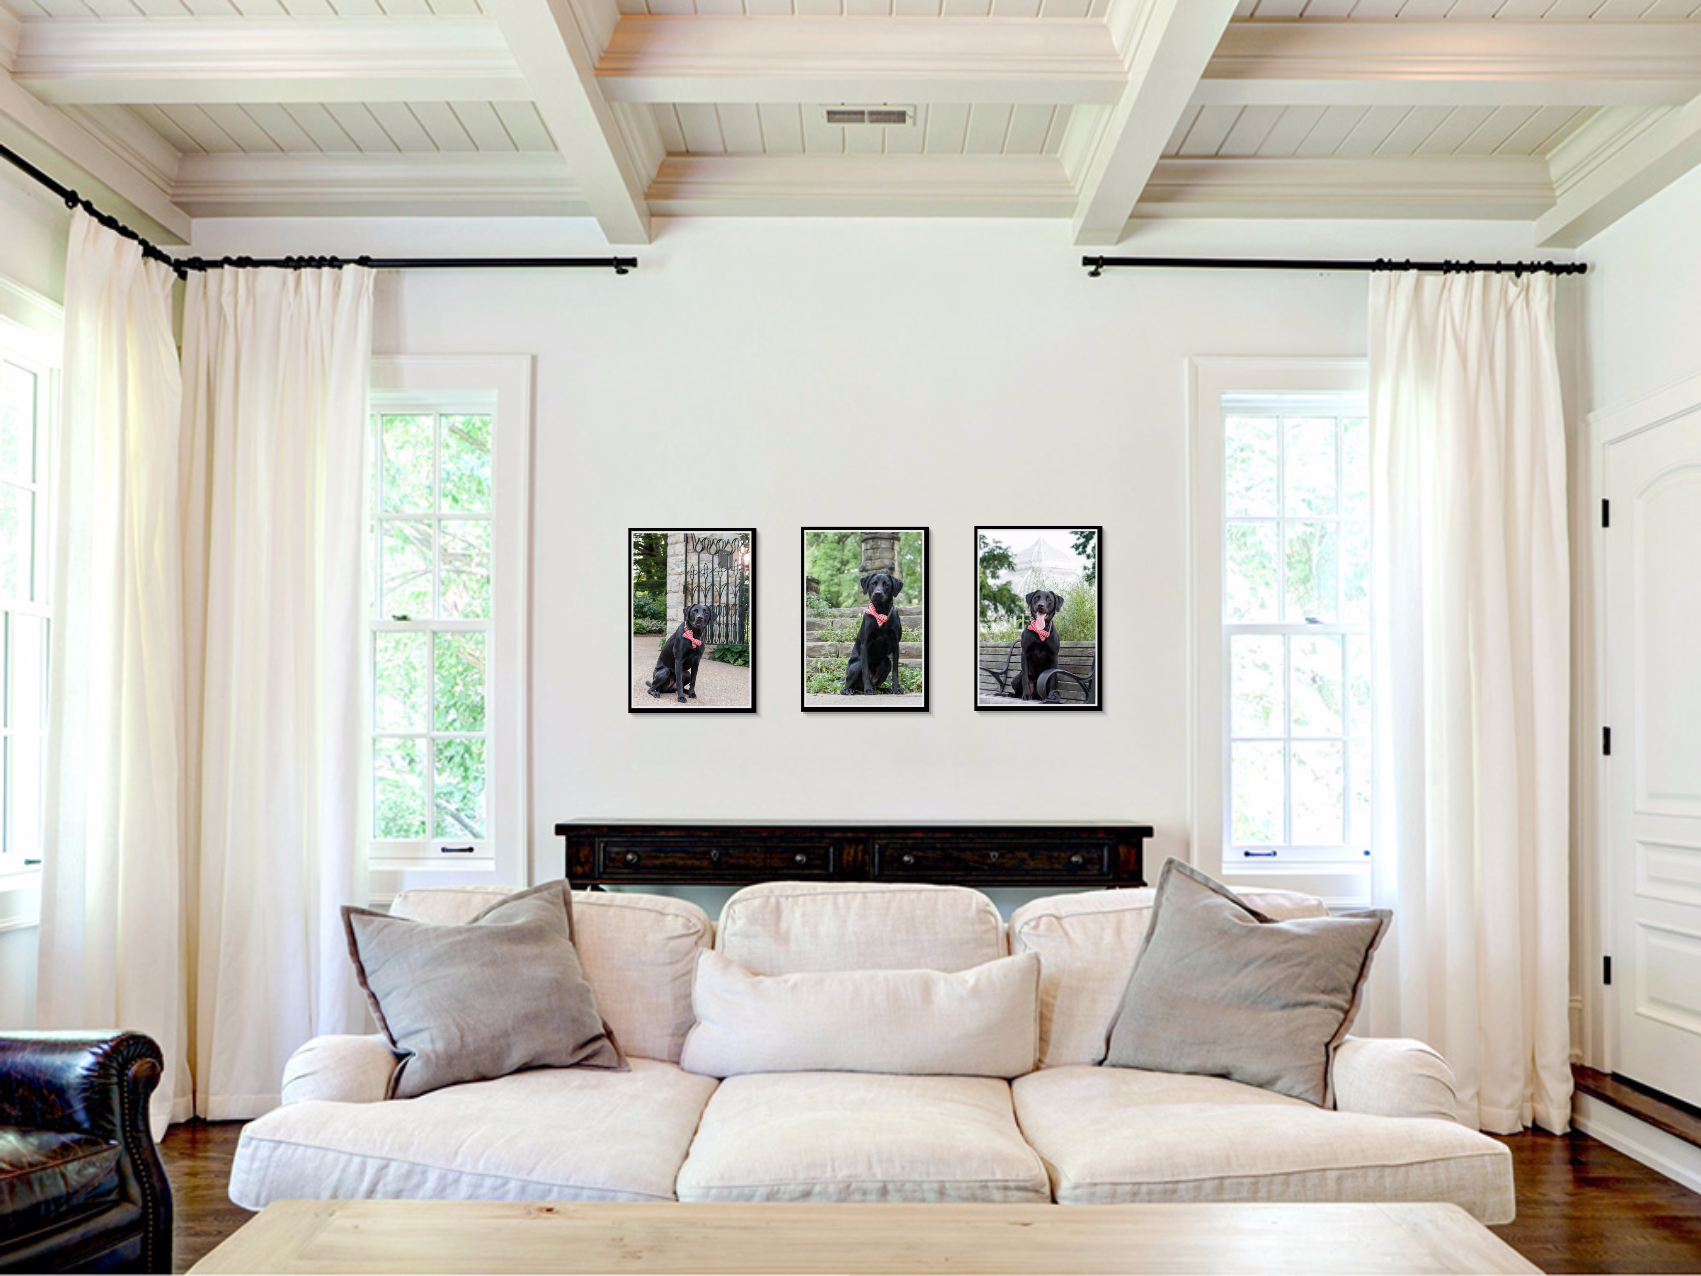 wall art framed prints trio above couch in living room